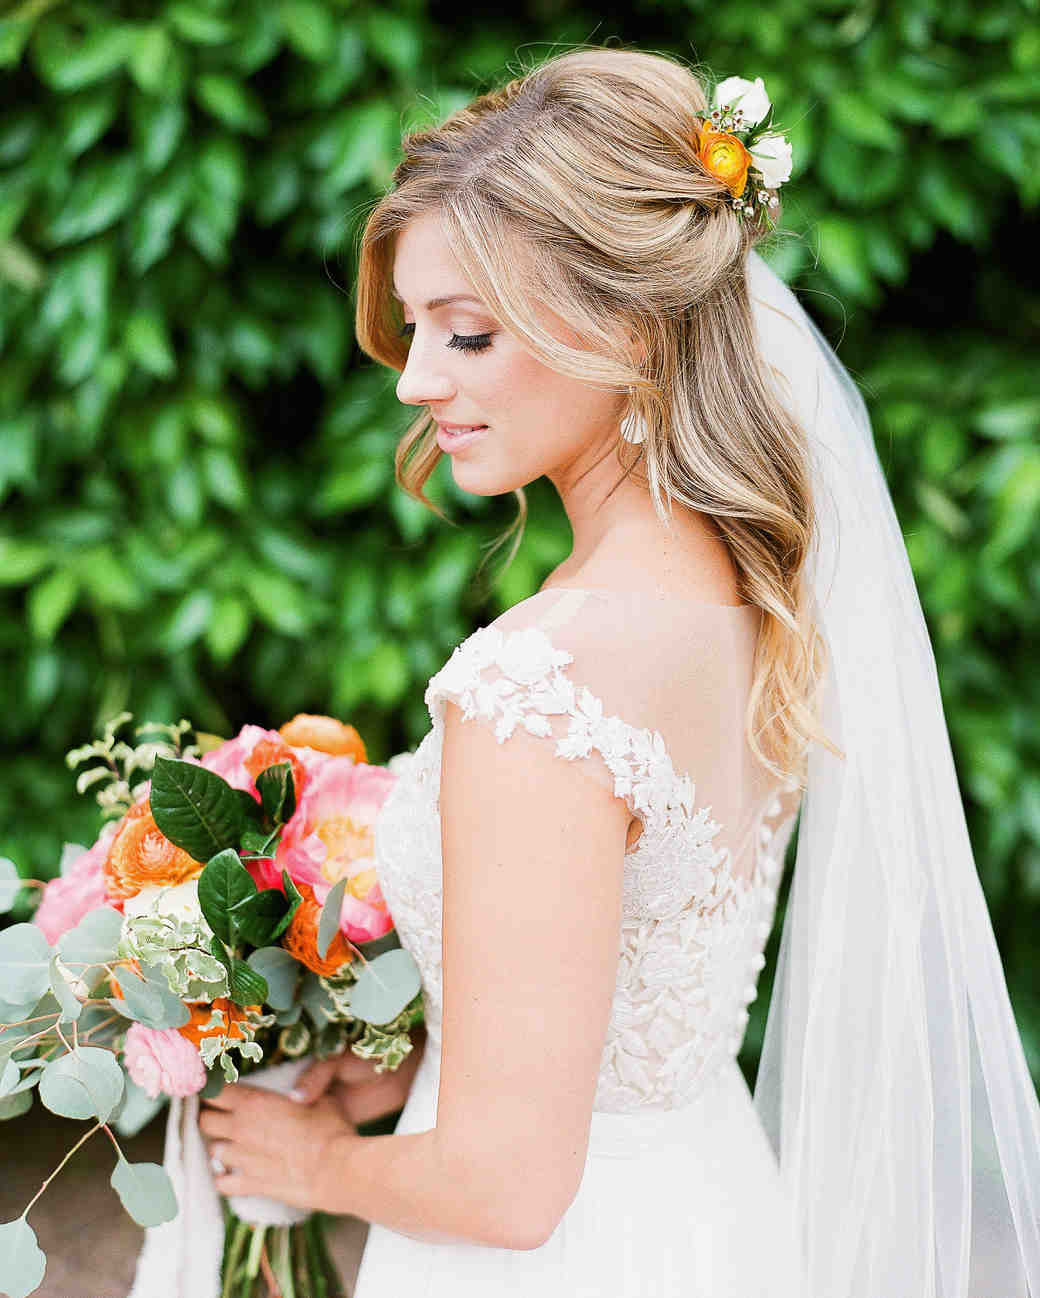 Wedding Hairstyle Photos: 28 Half-Up, Half-Down Wedding Hairstyles We Love